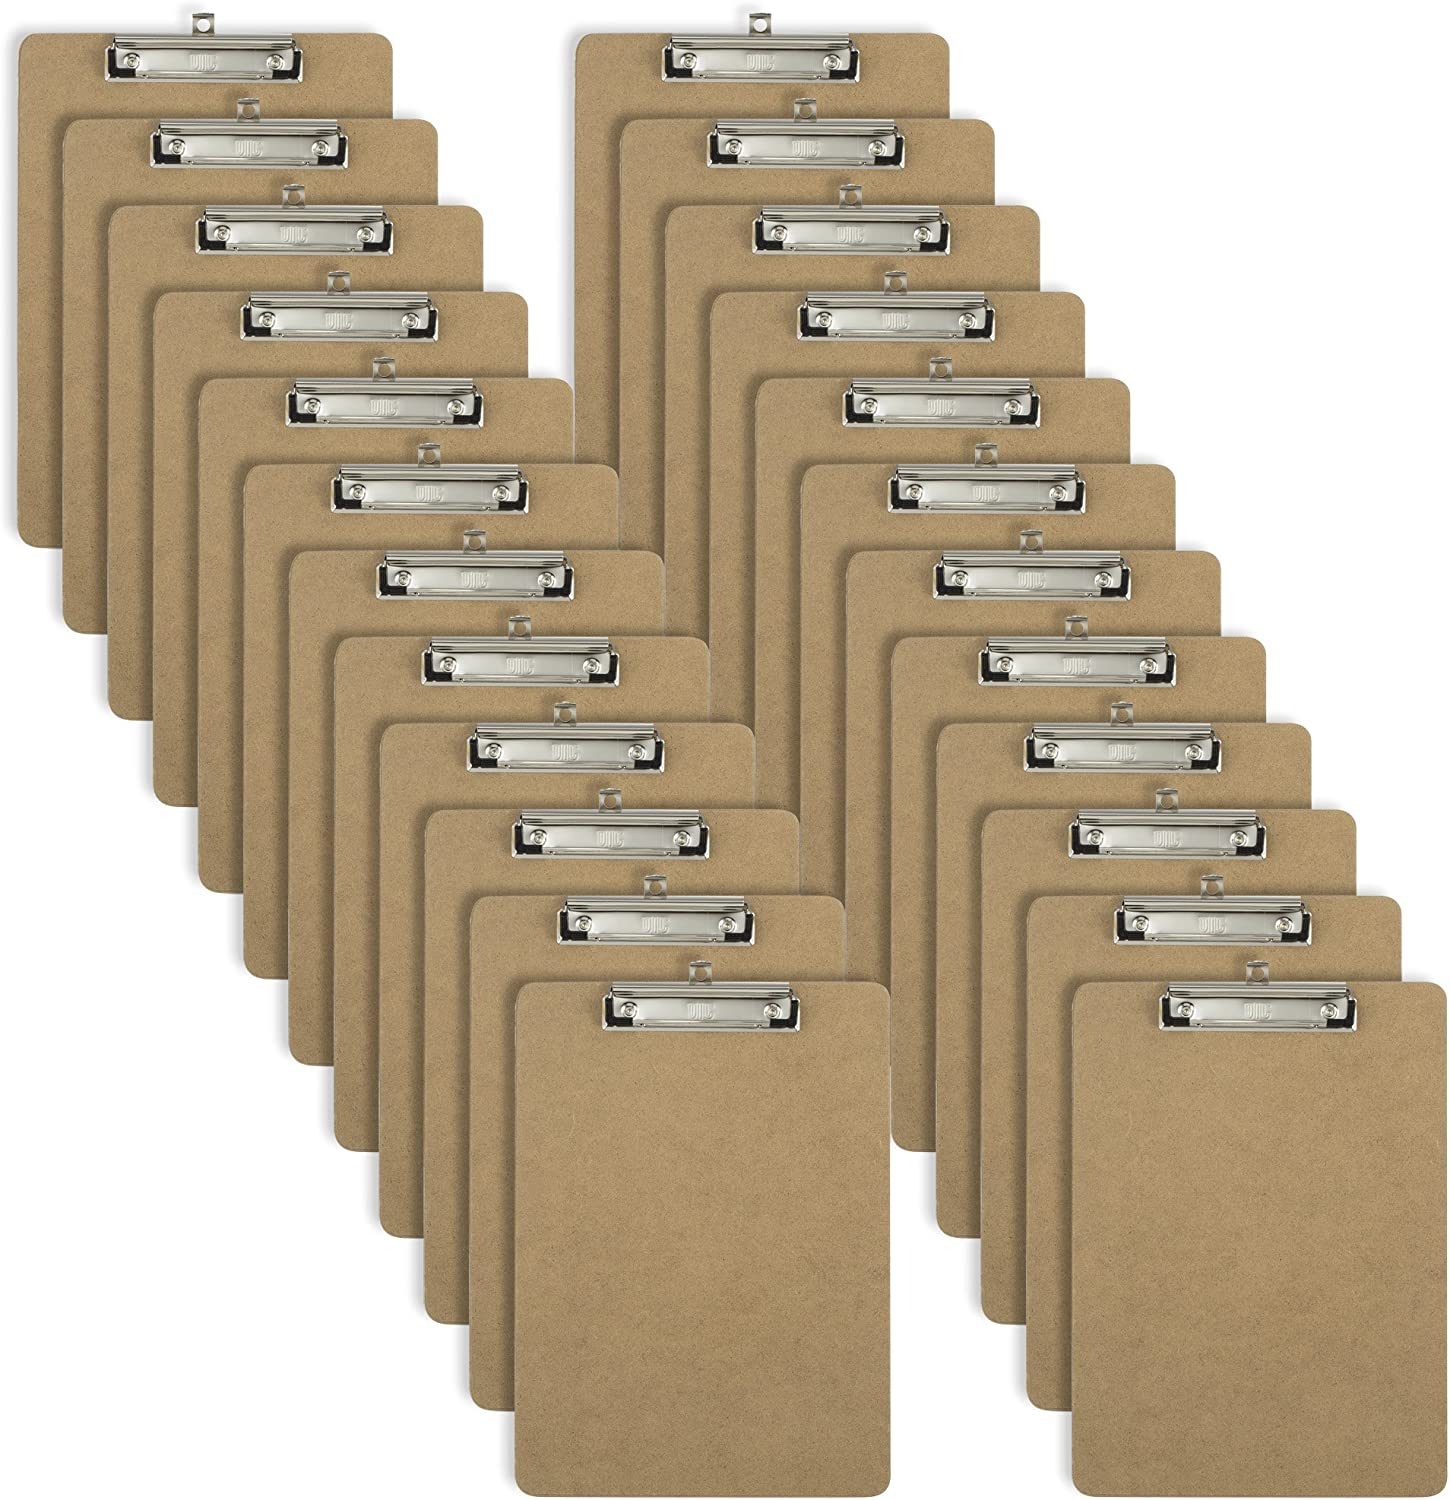 Officemate Letter Size Wood Clipboards, Low Profile Clip, 24 Pack Clipboard, Brown (83824)